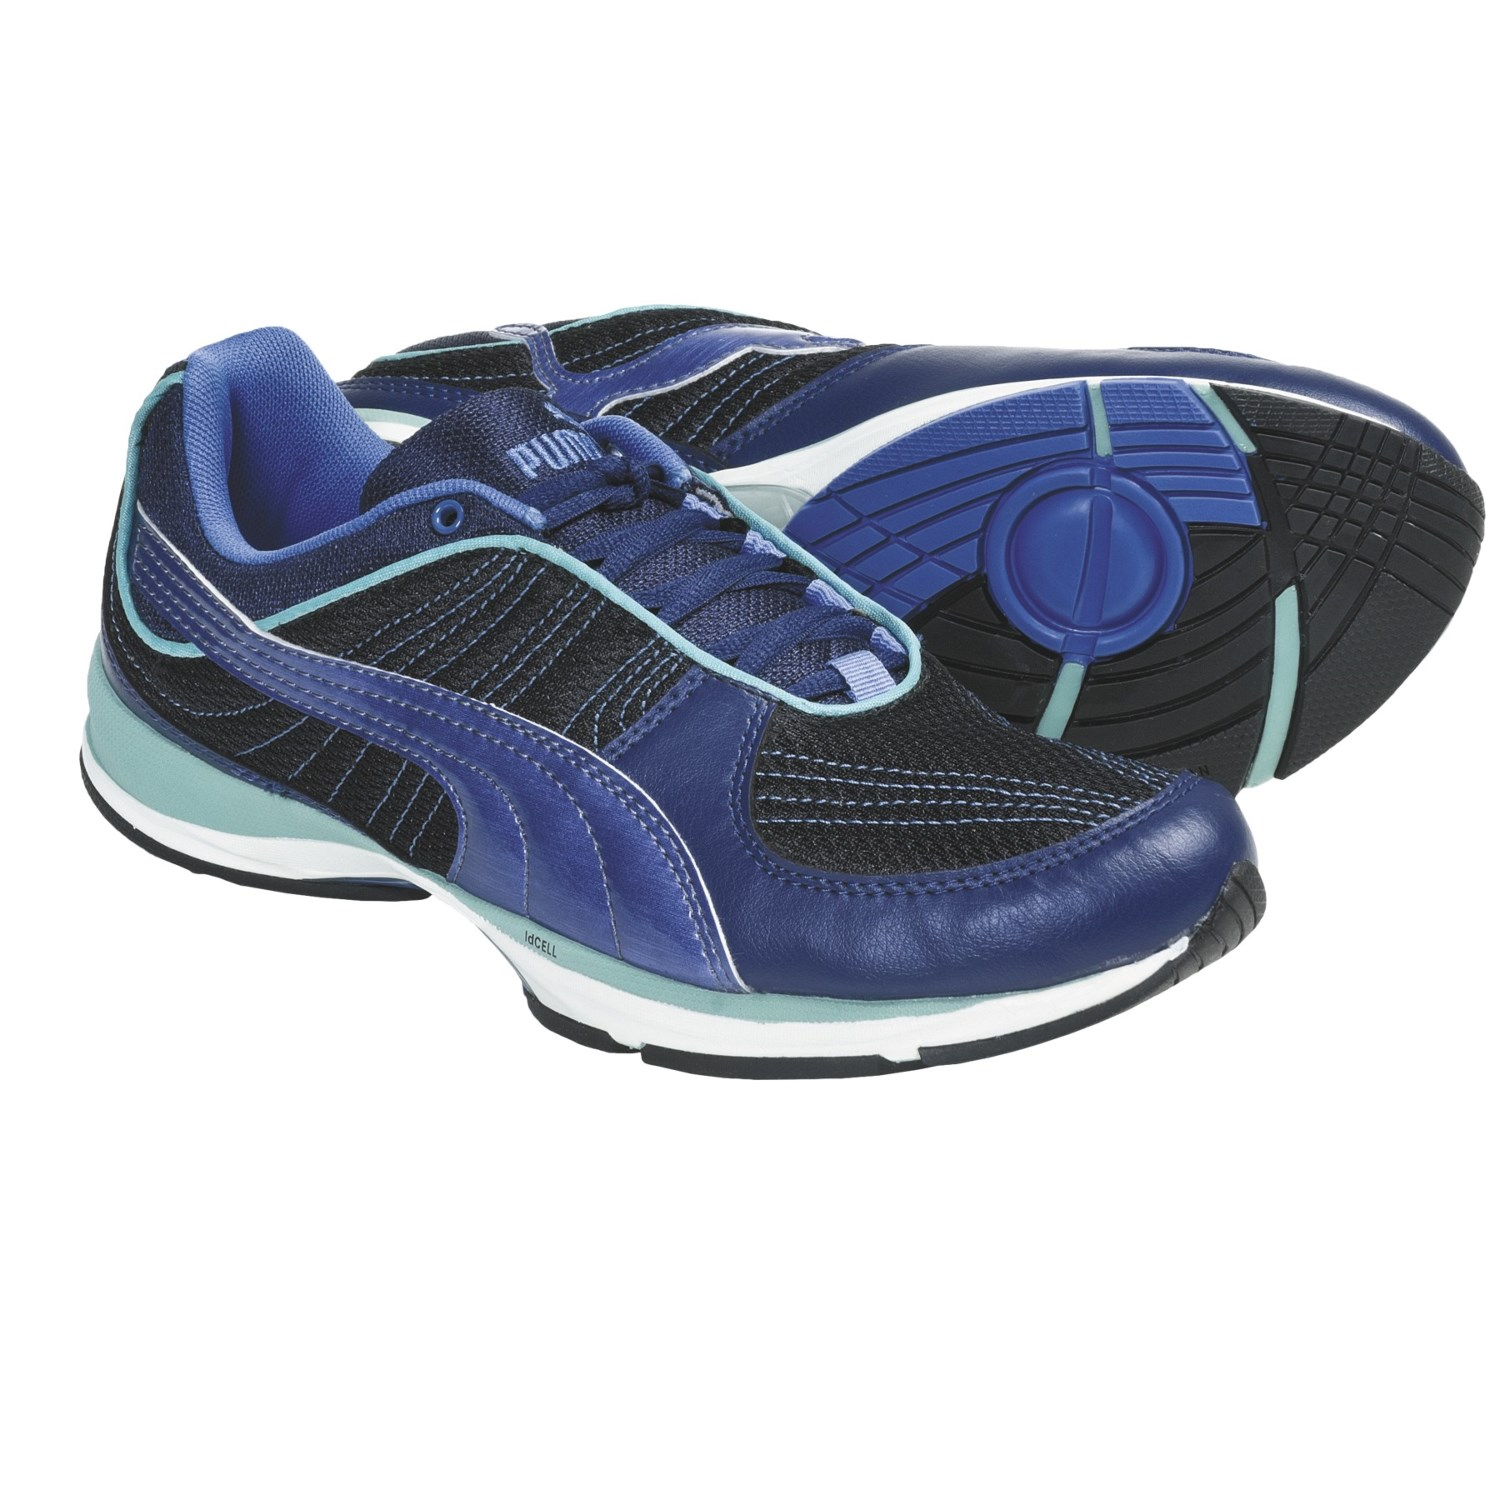 Puma Wylie Infinity 2 Cross Training Shoes (For Women) in Medieval